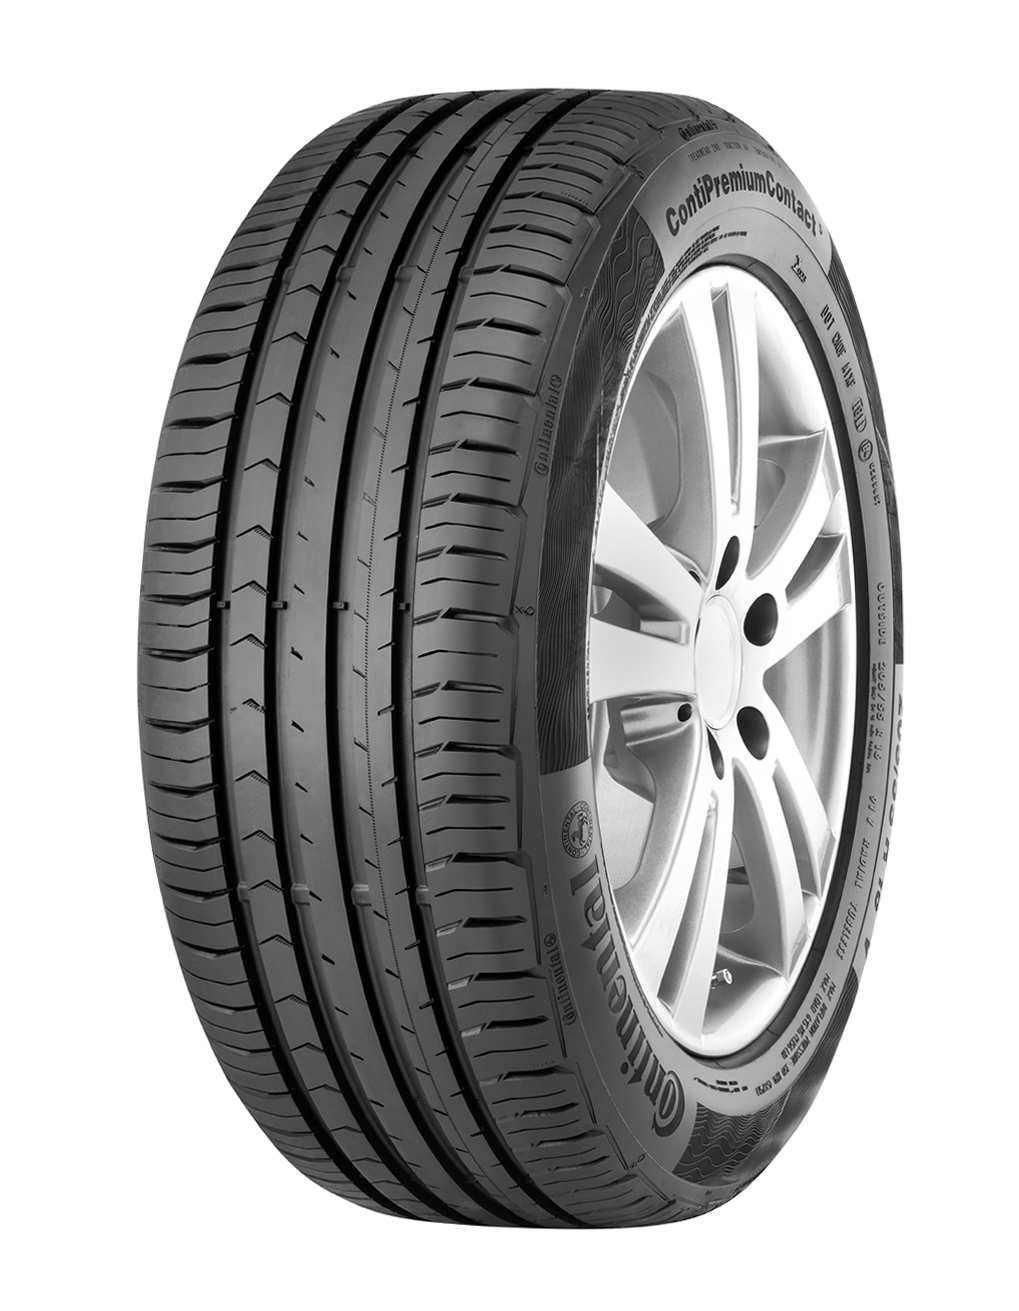 1x Continental ContiPremiumContact 5 215/65 R16 98